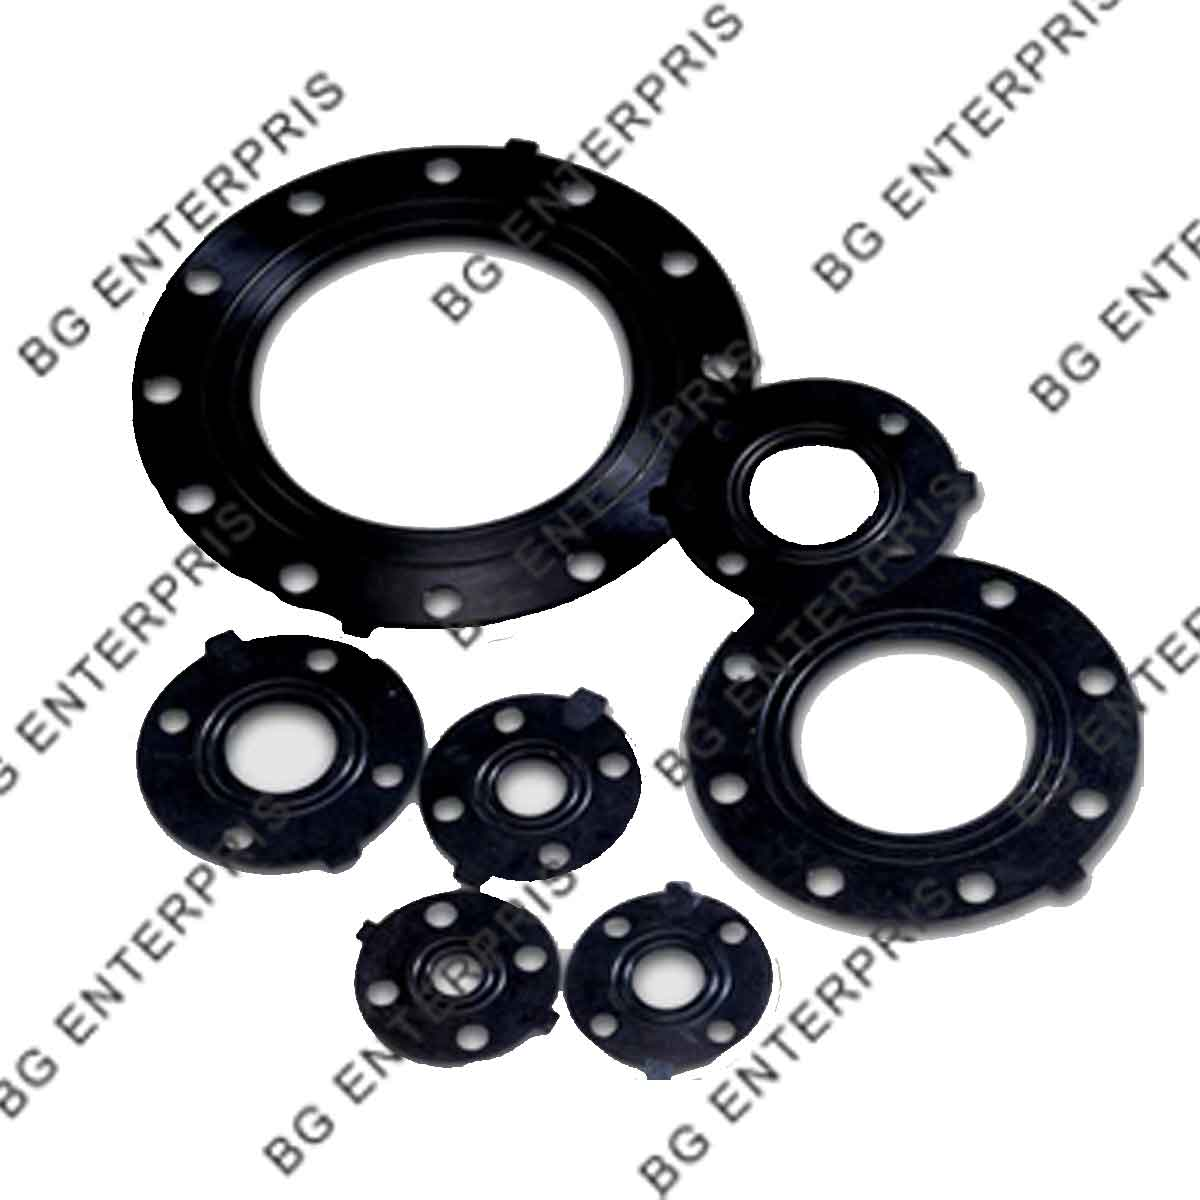 Rubber Gasket | BG ENTERPRISES